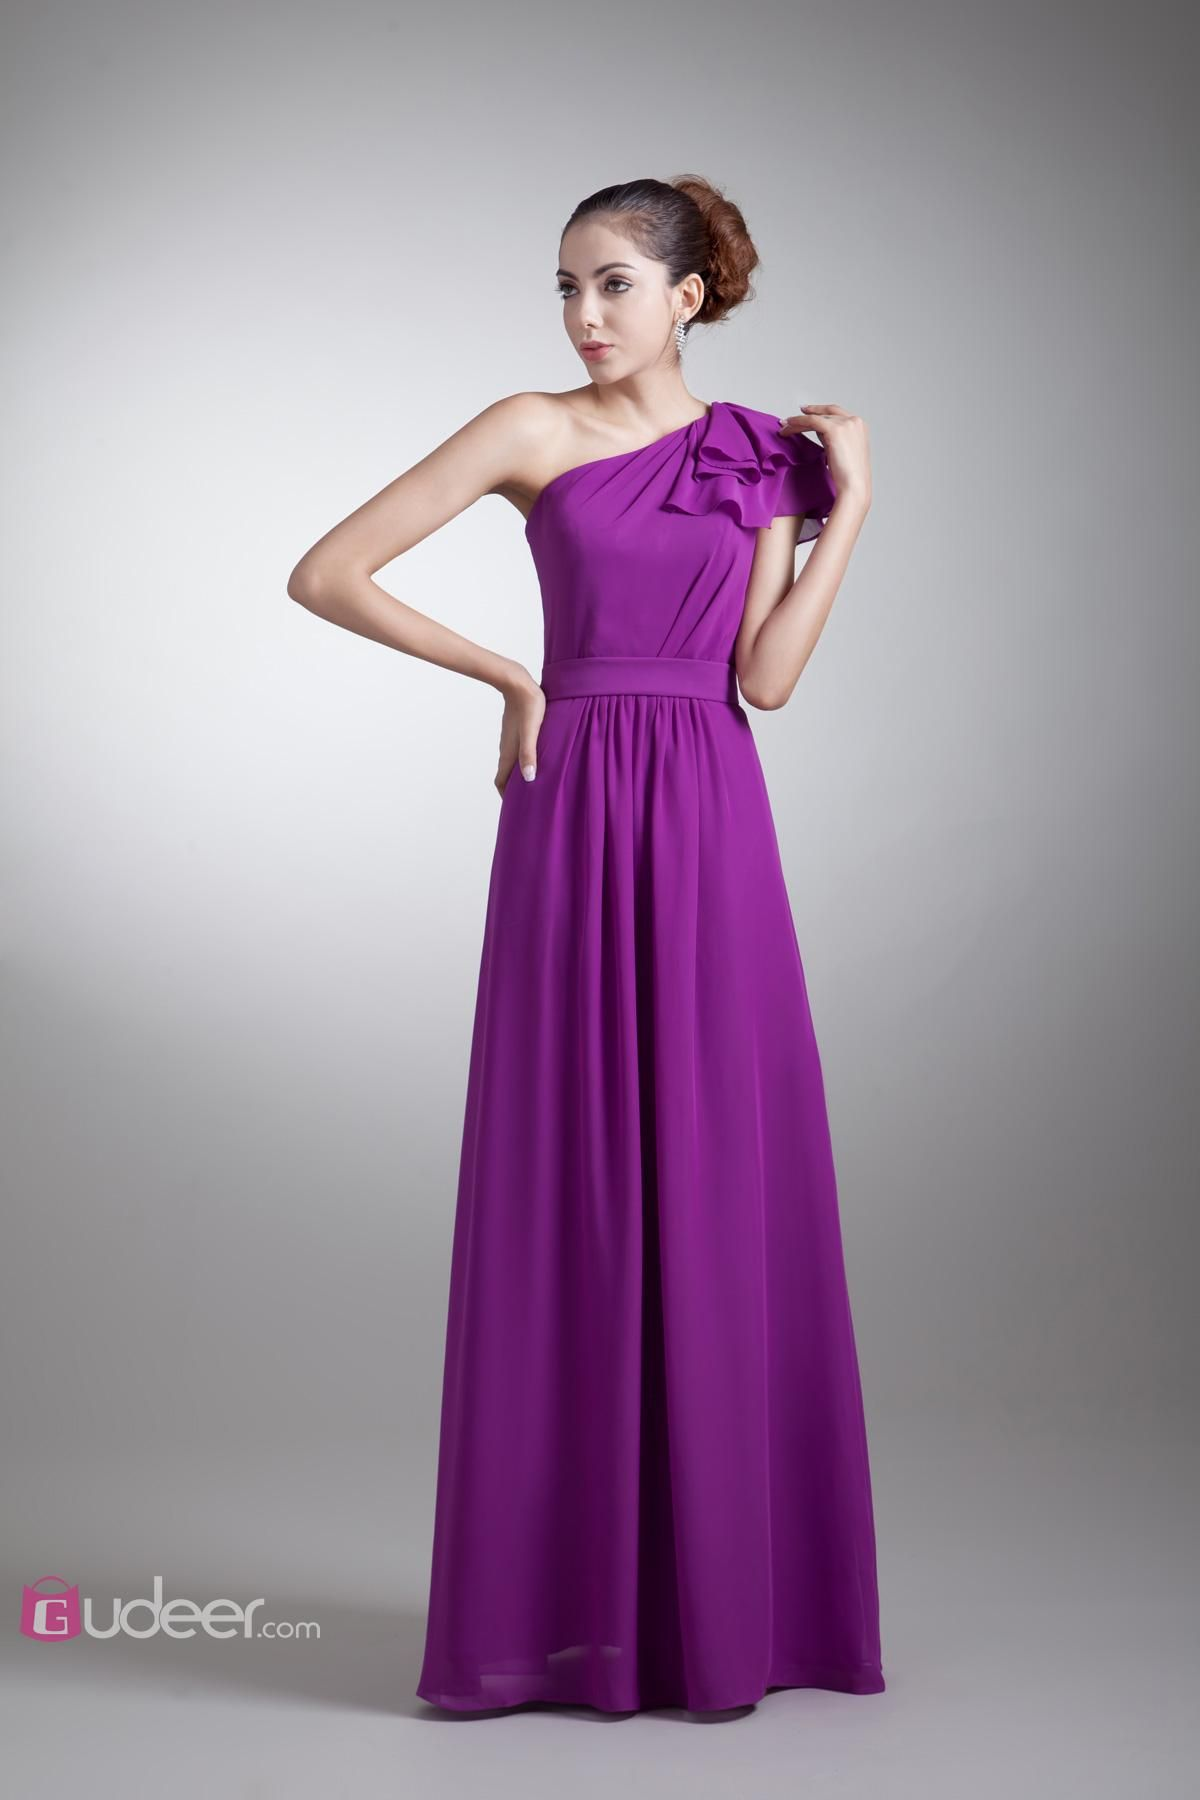 Elegant Purple One Shoulder A-line Long Bridesmaid Dress with ...